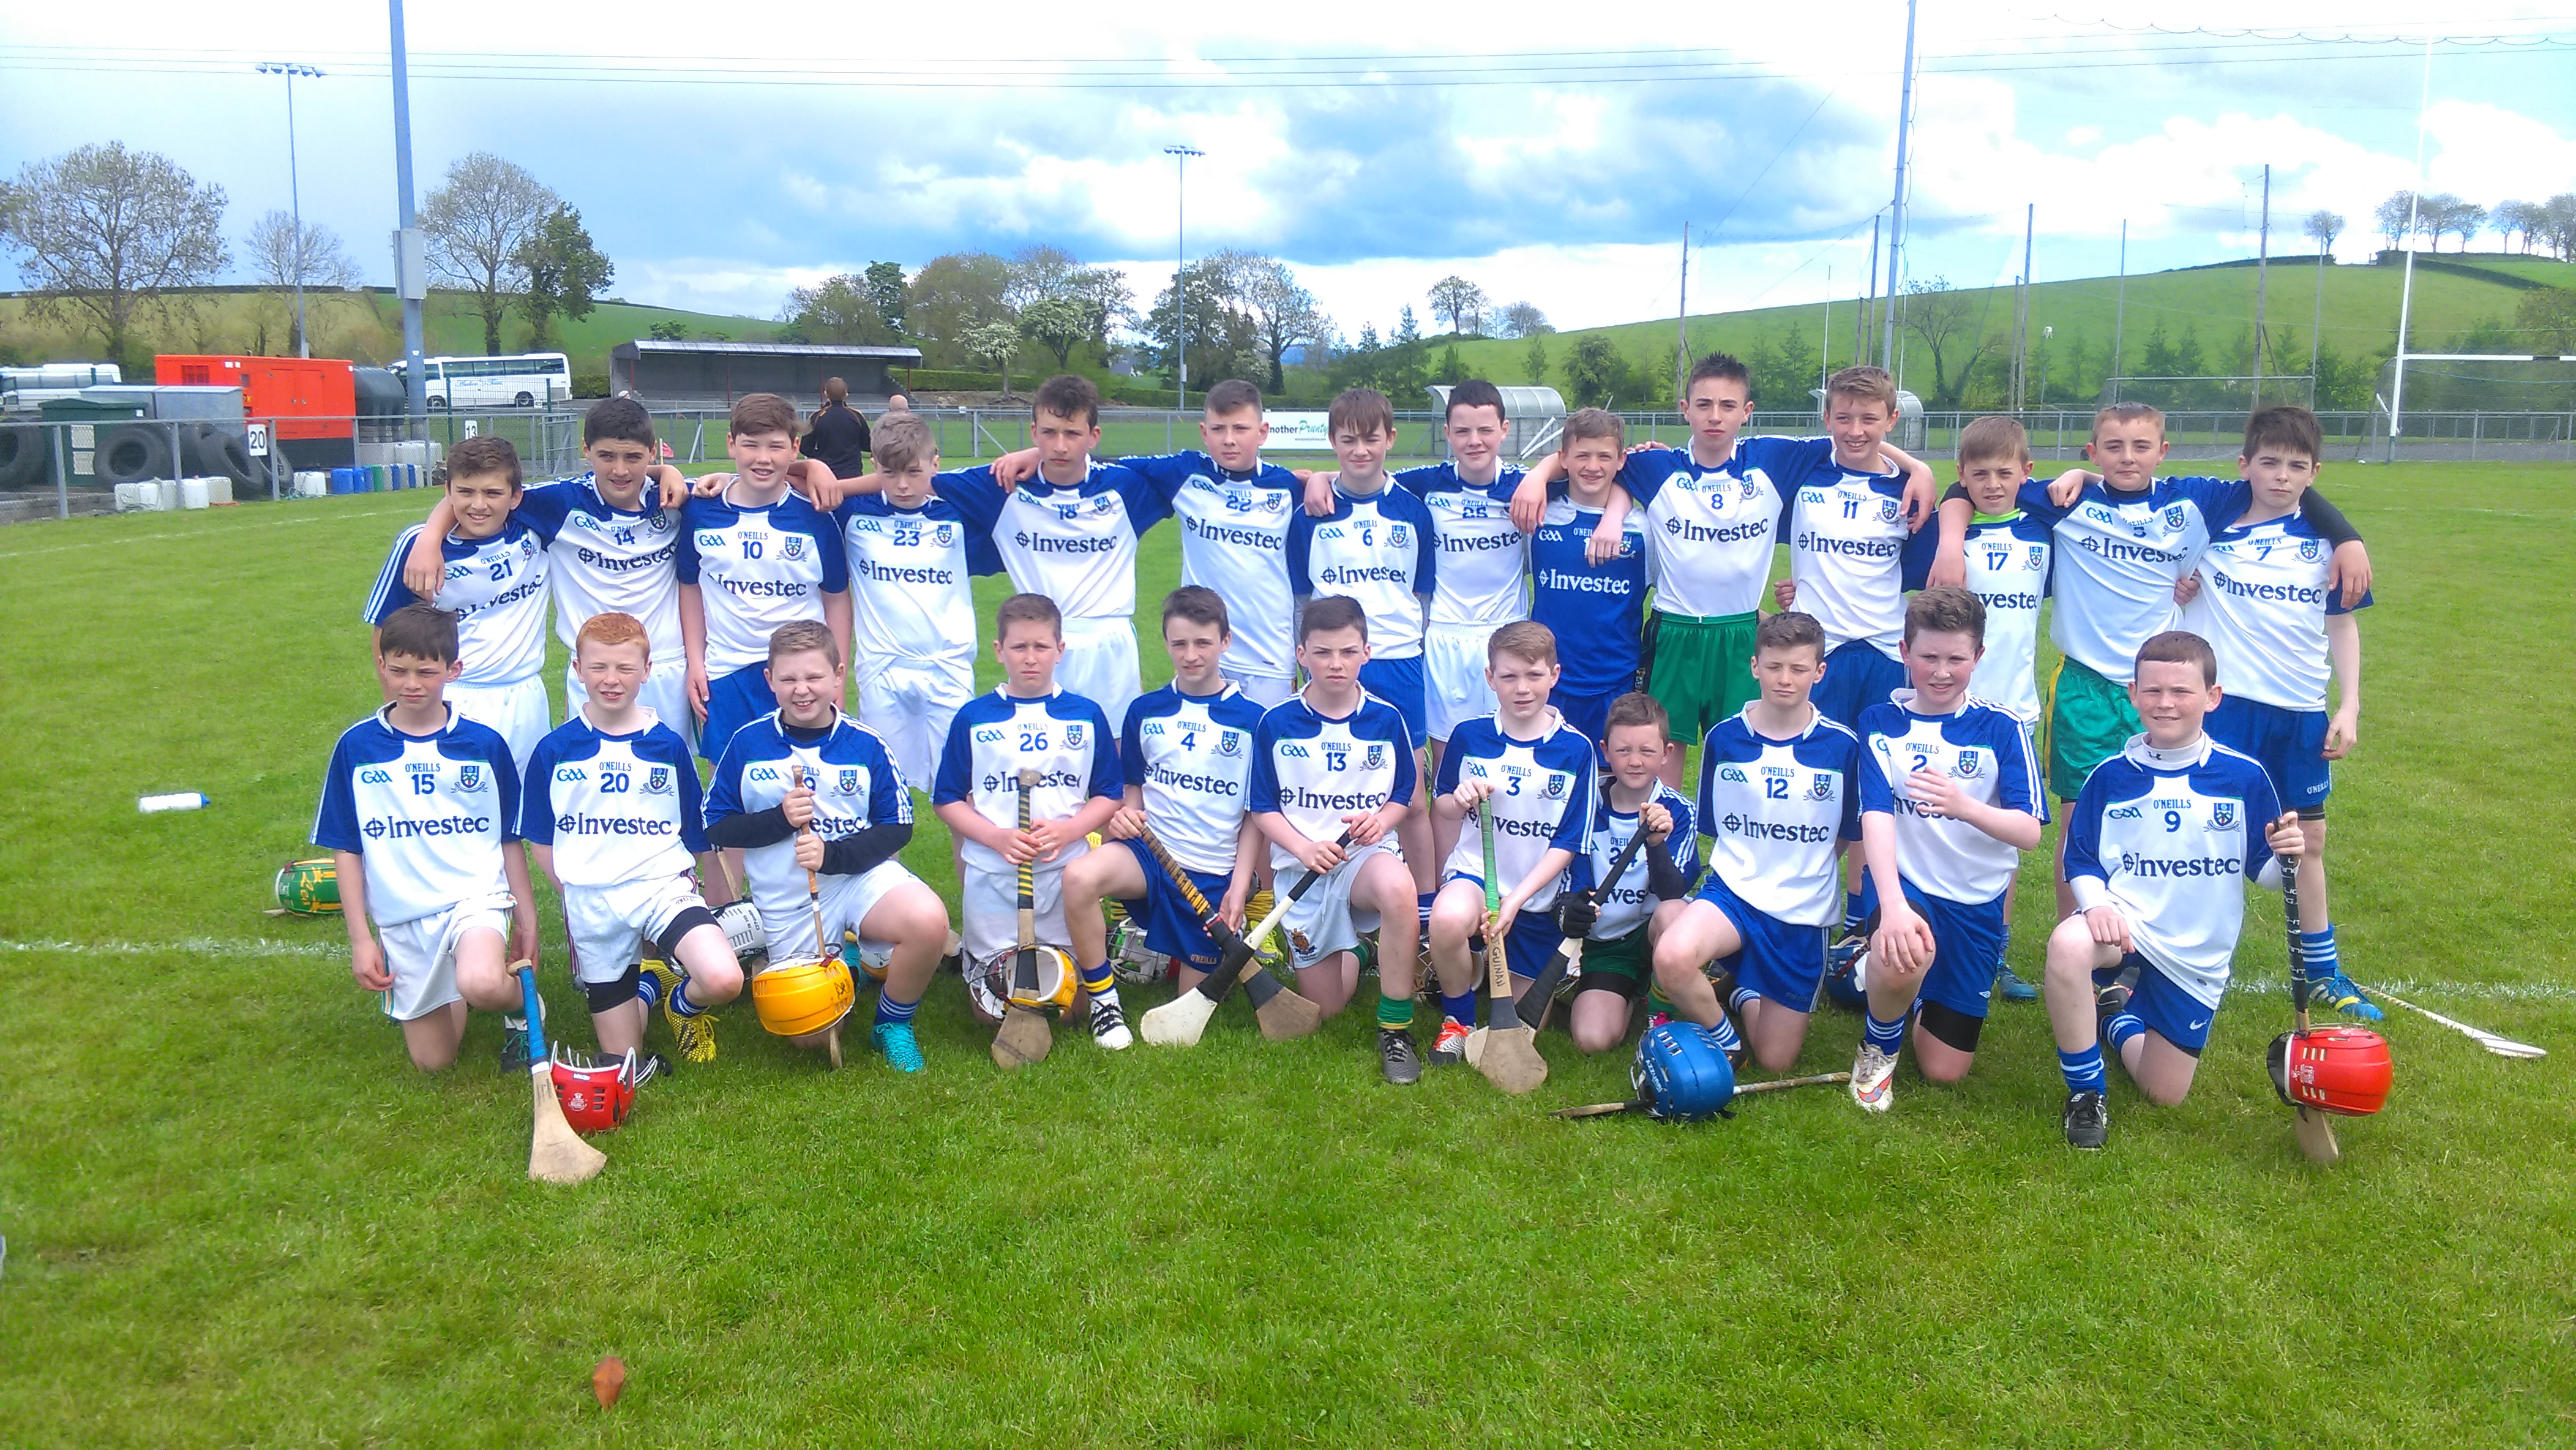 Clg mhuineach in the official monaghan gaa website for Upullandpay